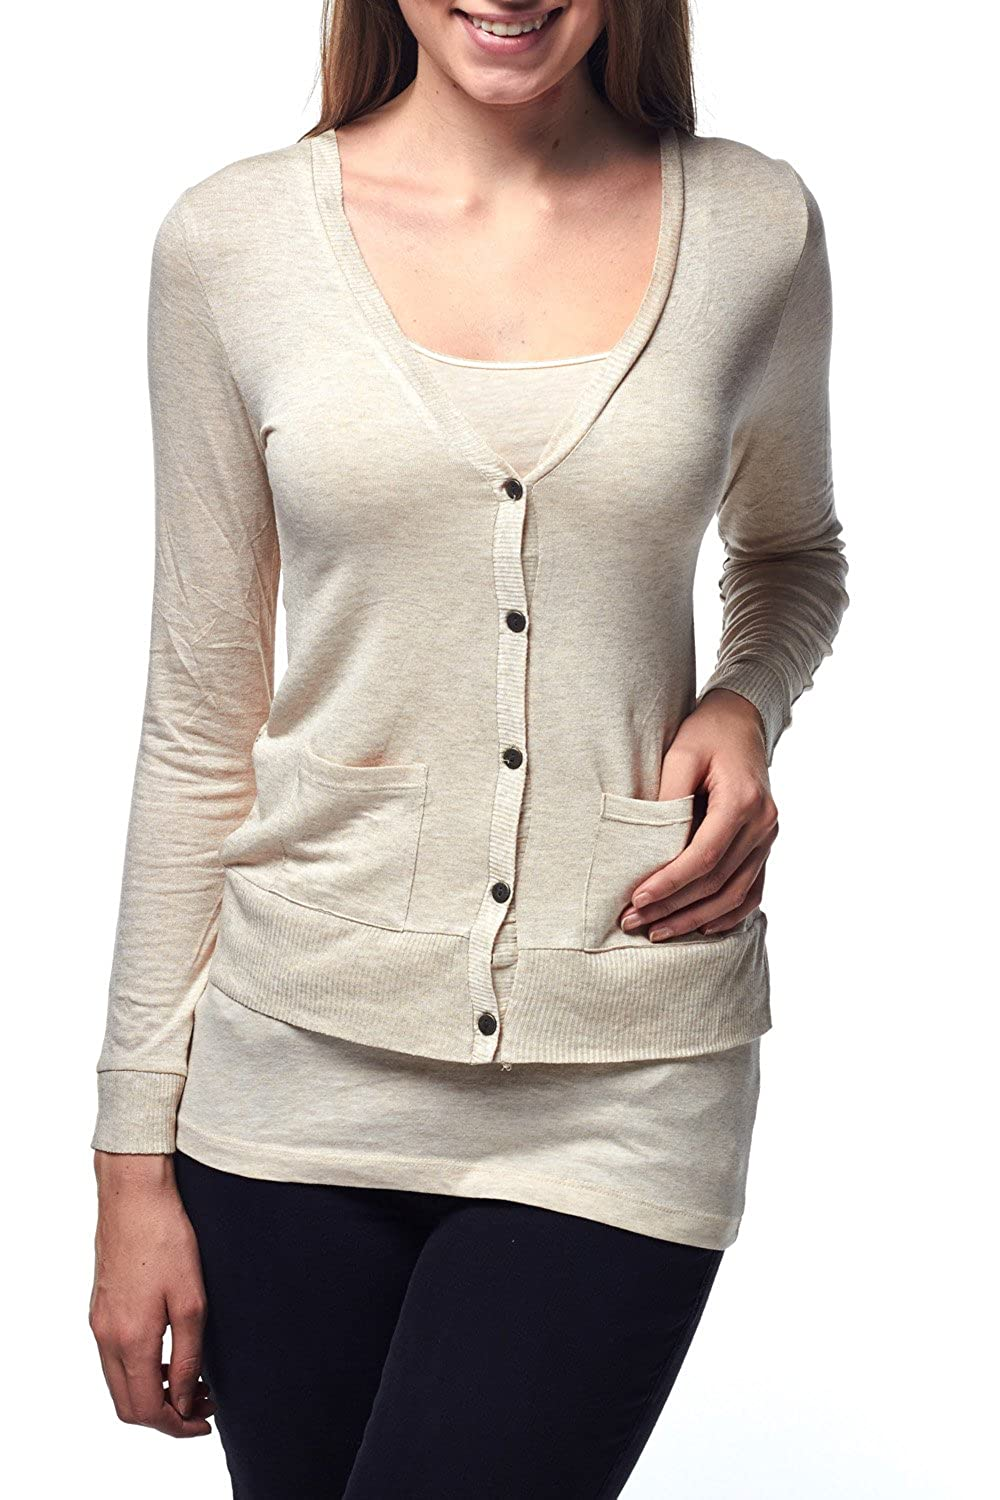 Luna Flower Women's Button Front V-Neck Long Sleeve Lace Sexy Back Cardigans